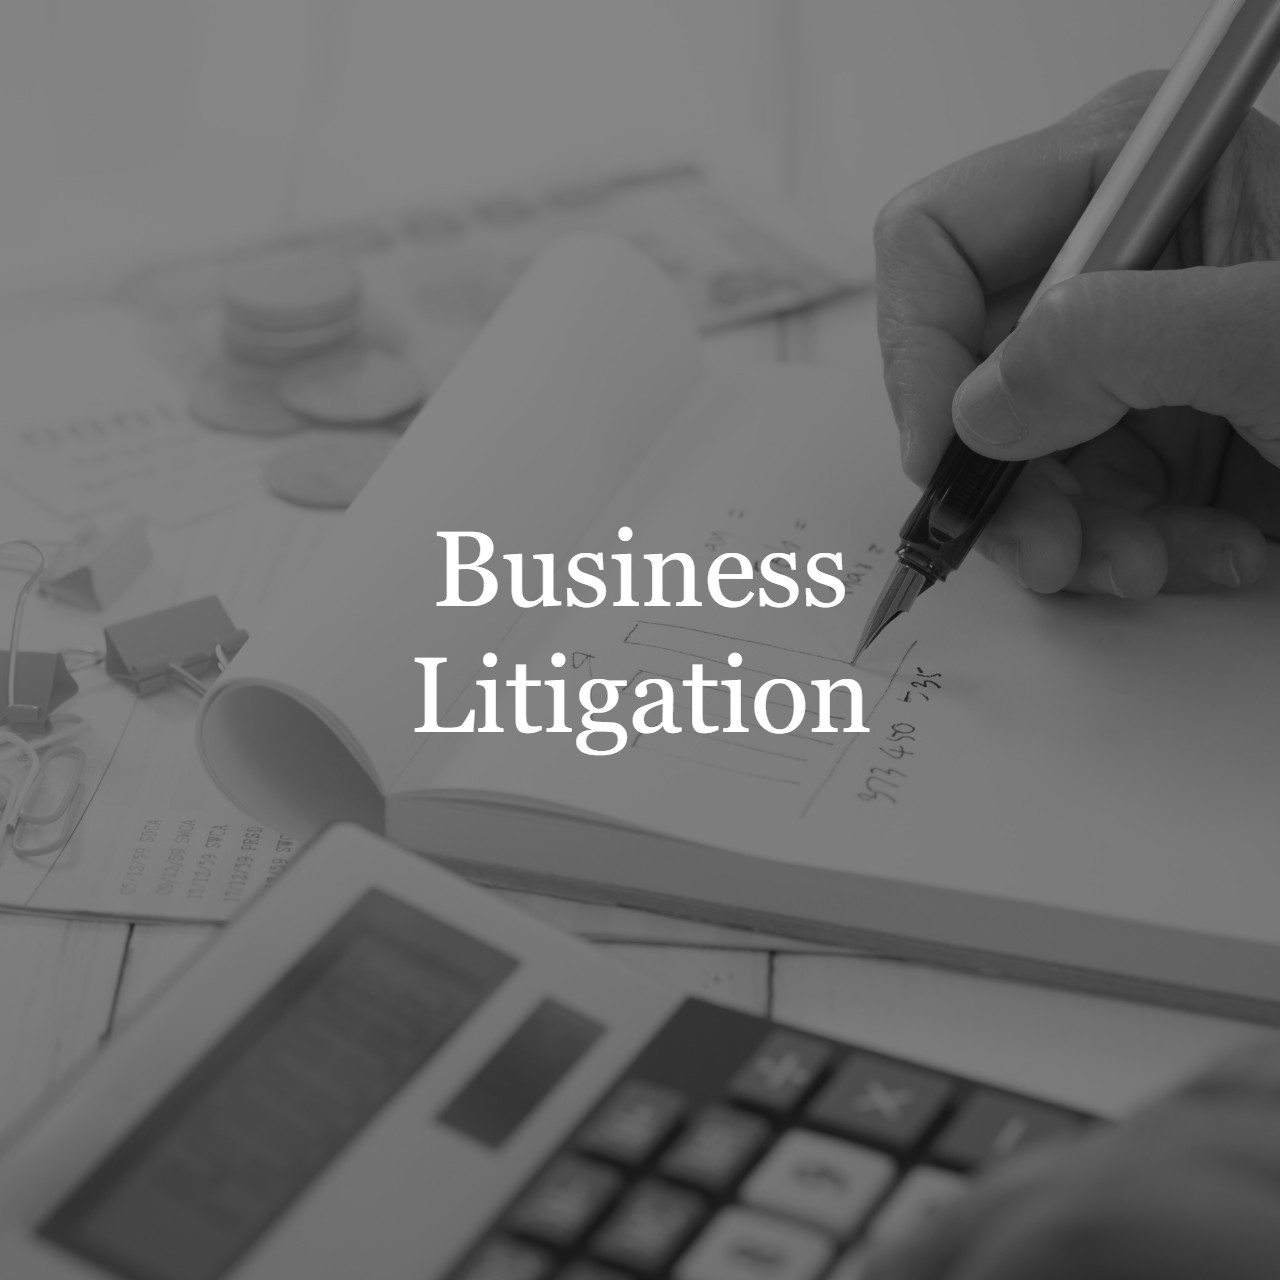 Business Litigation - Having trouble with your business partners or investors? Our creative team of attorneys are well seasoned in commercial and business litigation.